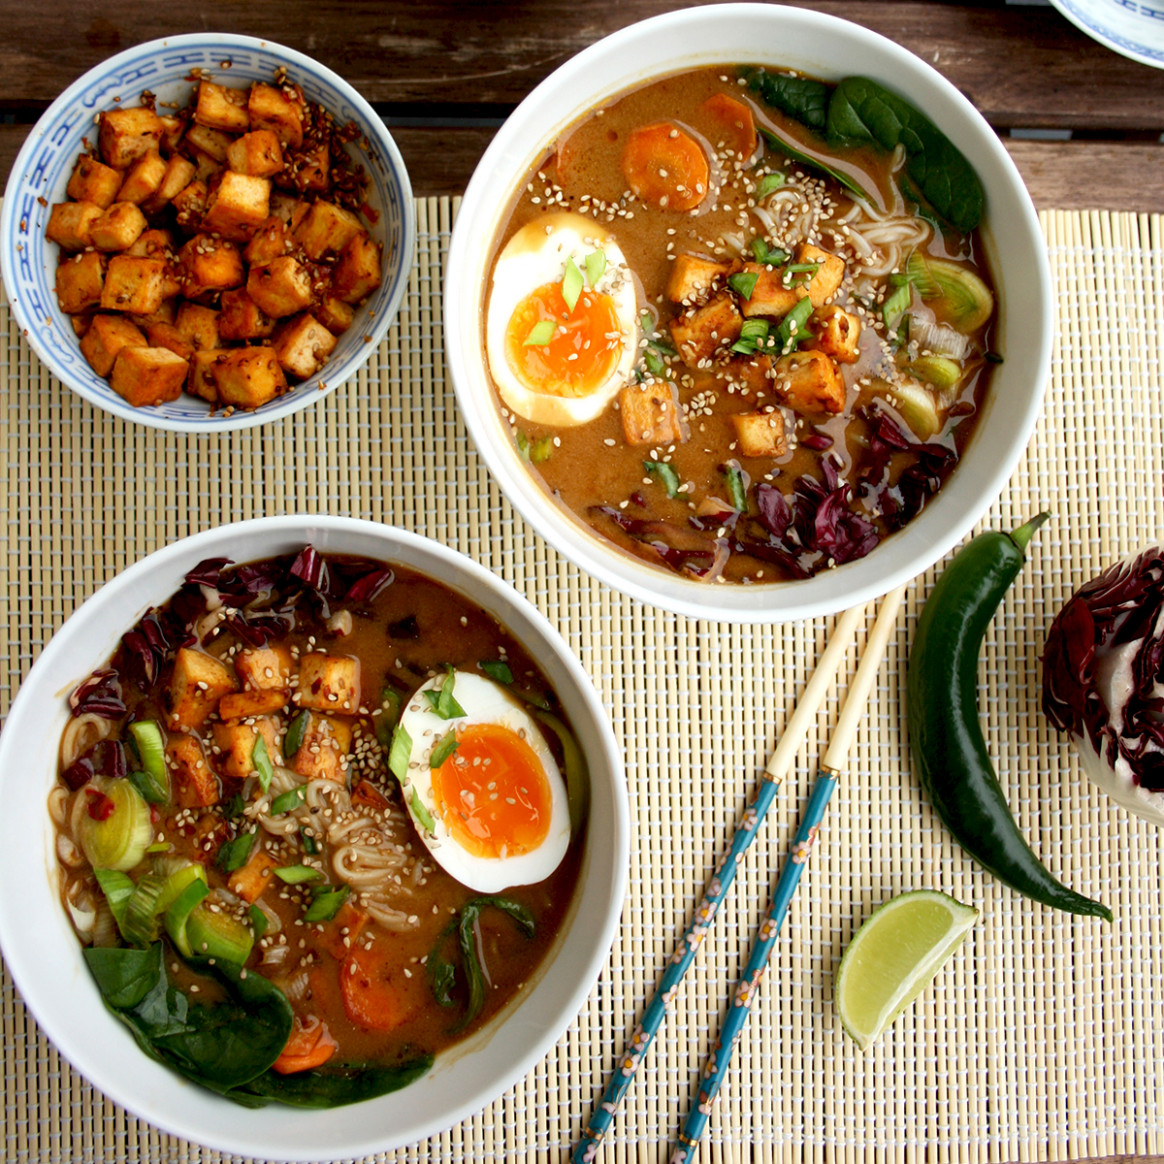 Healthy Ramen With Rice Noodles, Tofu And Veggies - Healthy Ramen Recipes